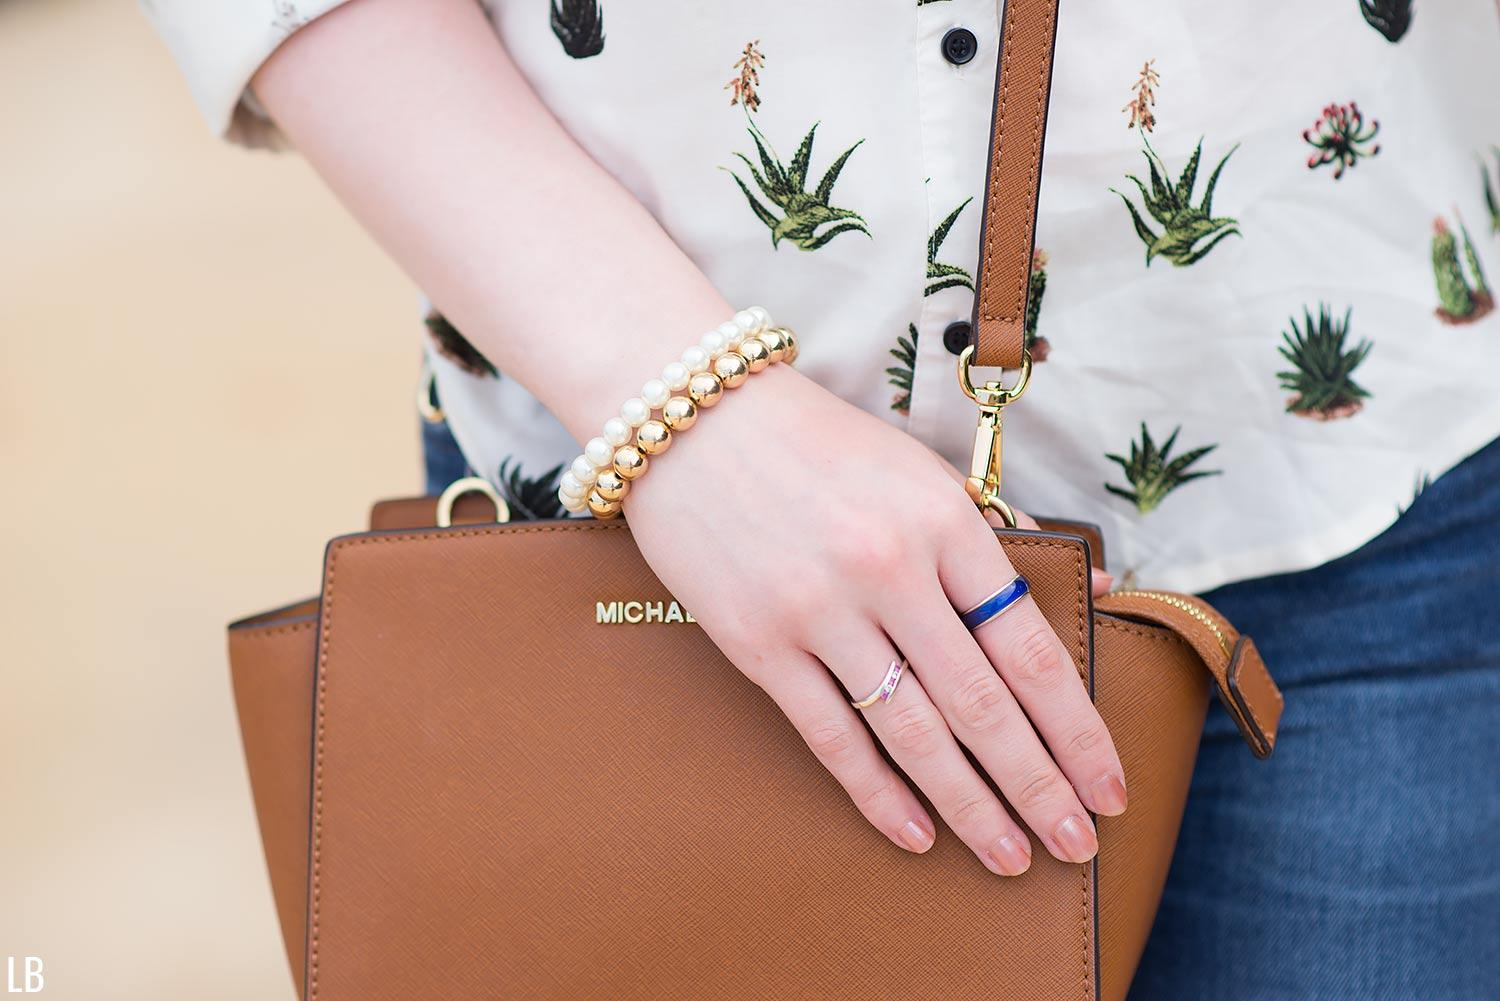 mood-ring-michael-kors-selma-bag